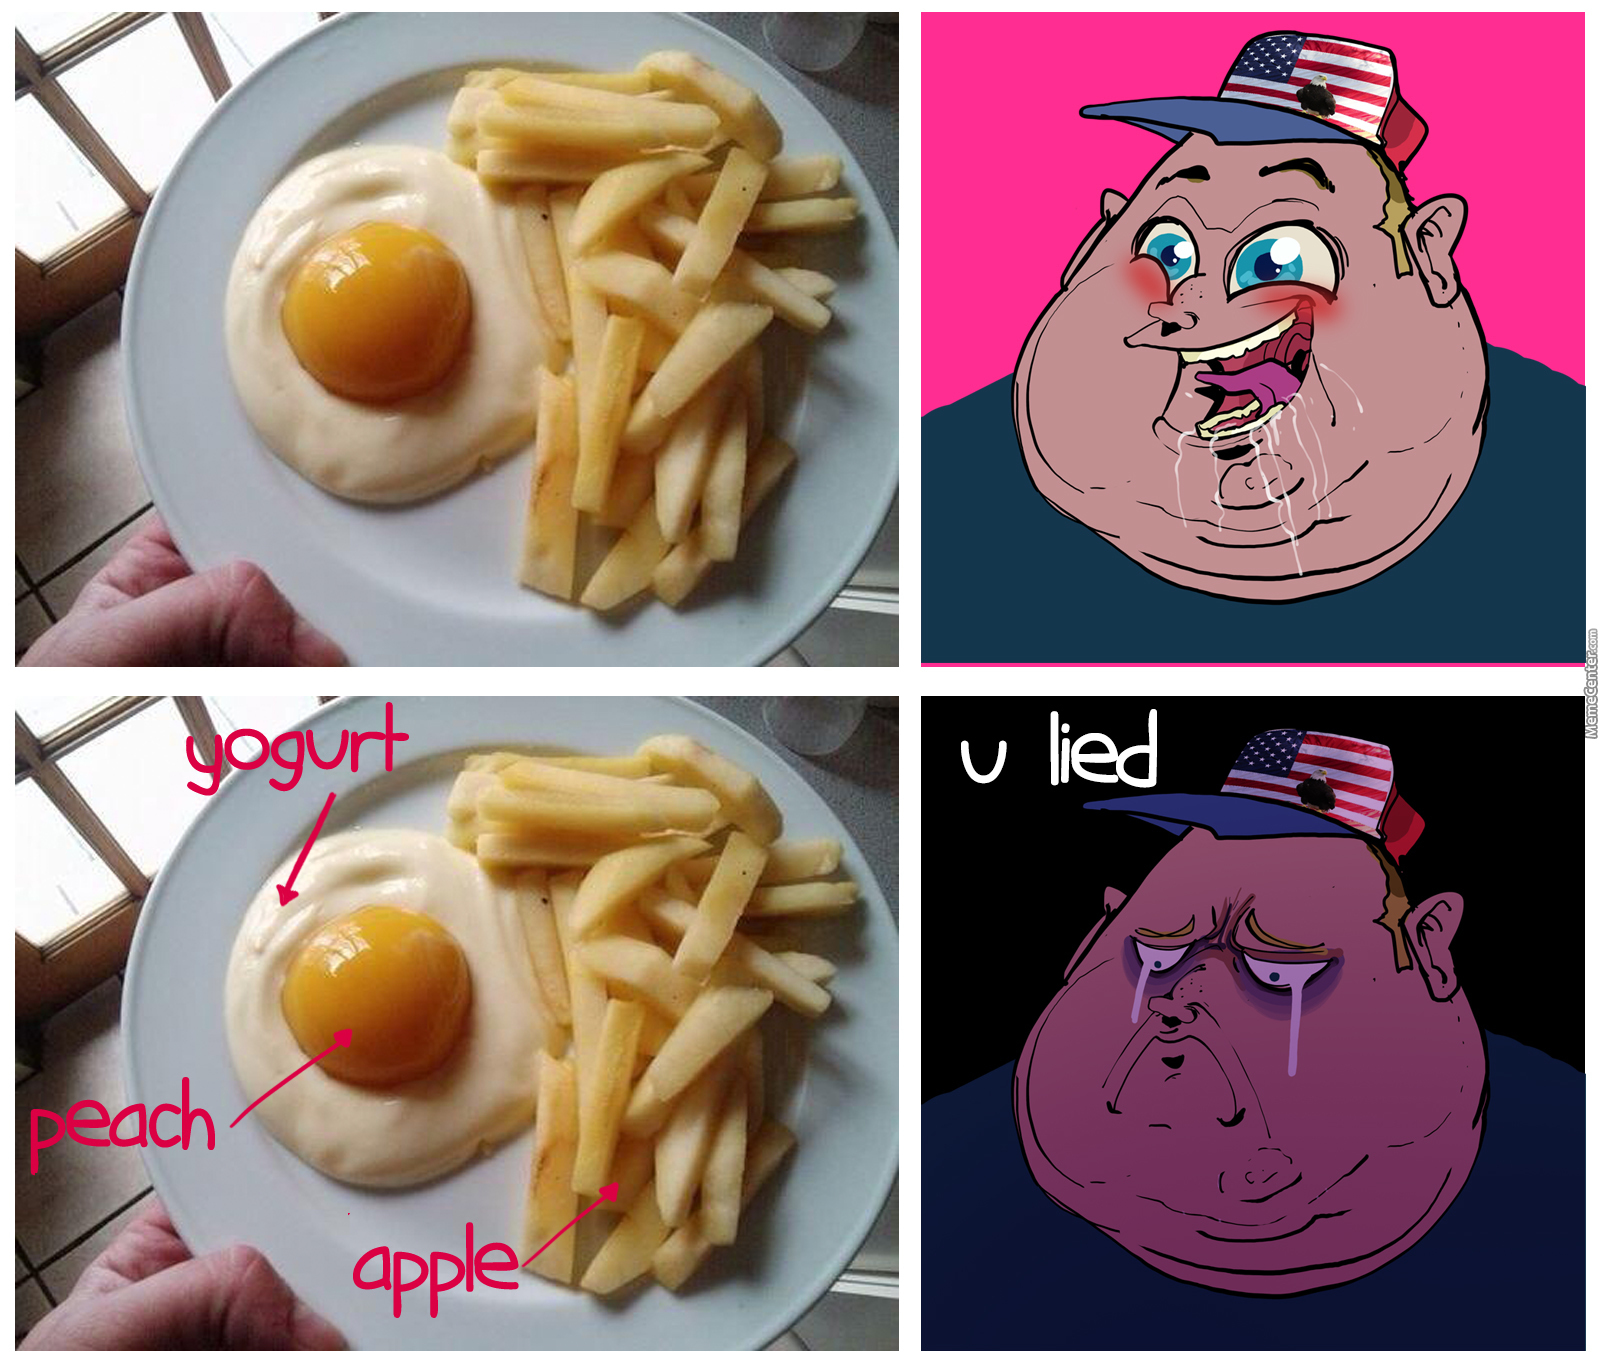 d5f typical 'murica breakfast or is it? 'murica know your meme